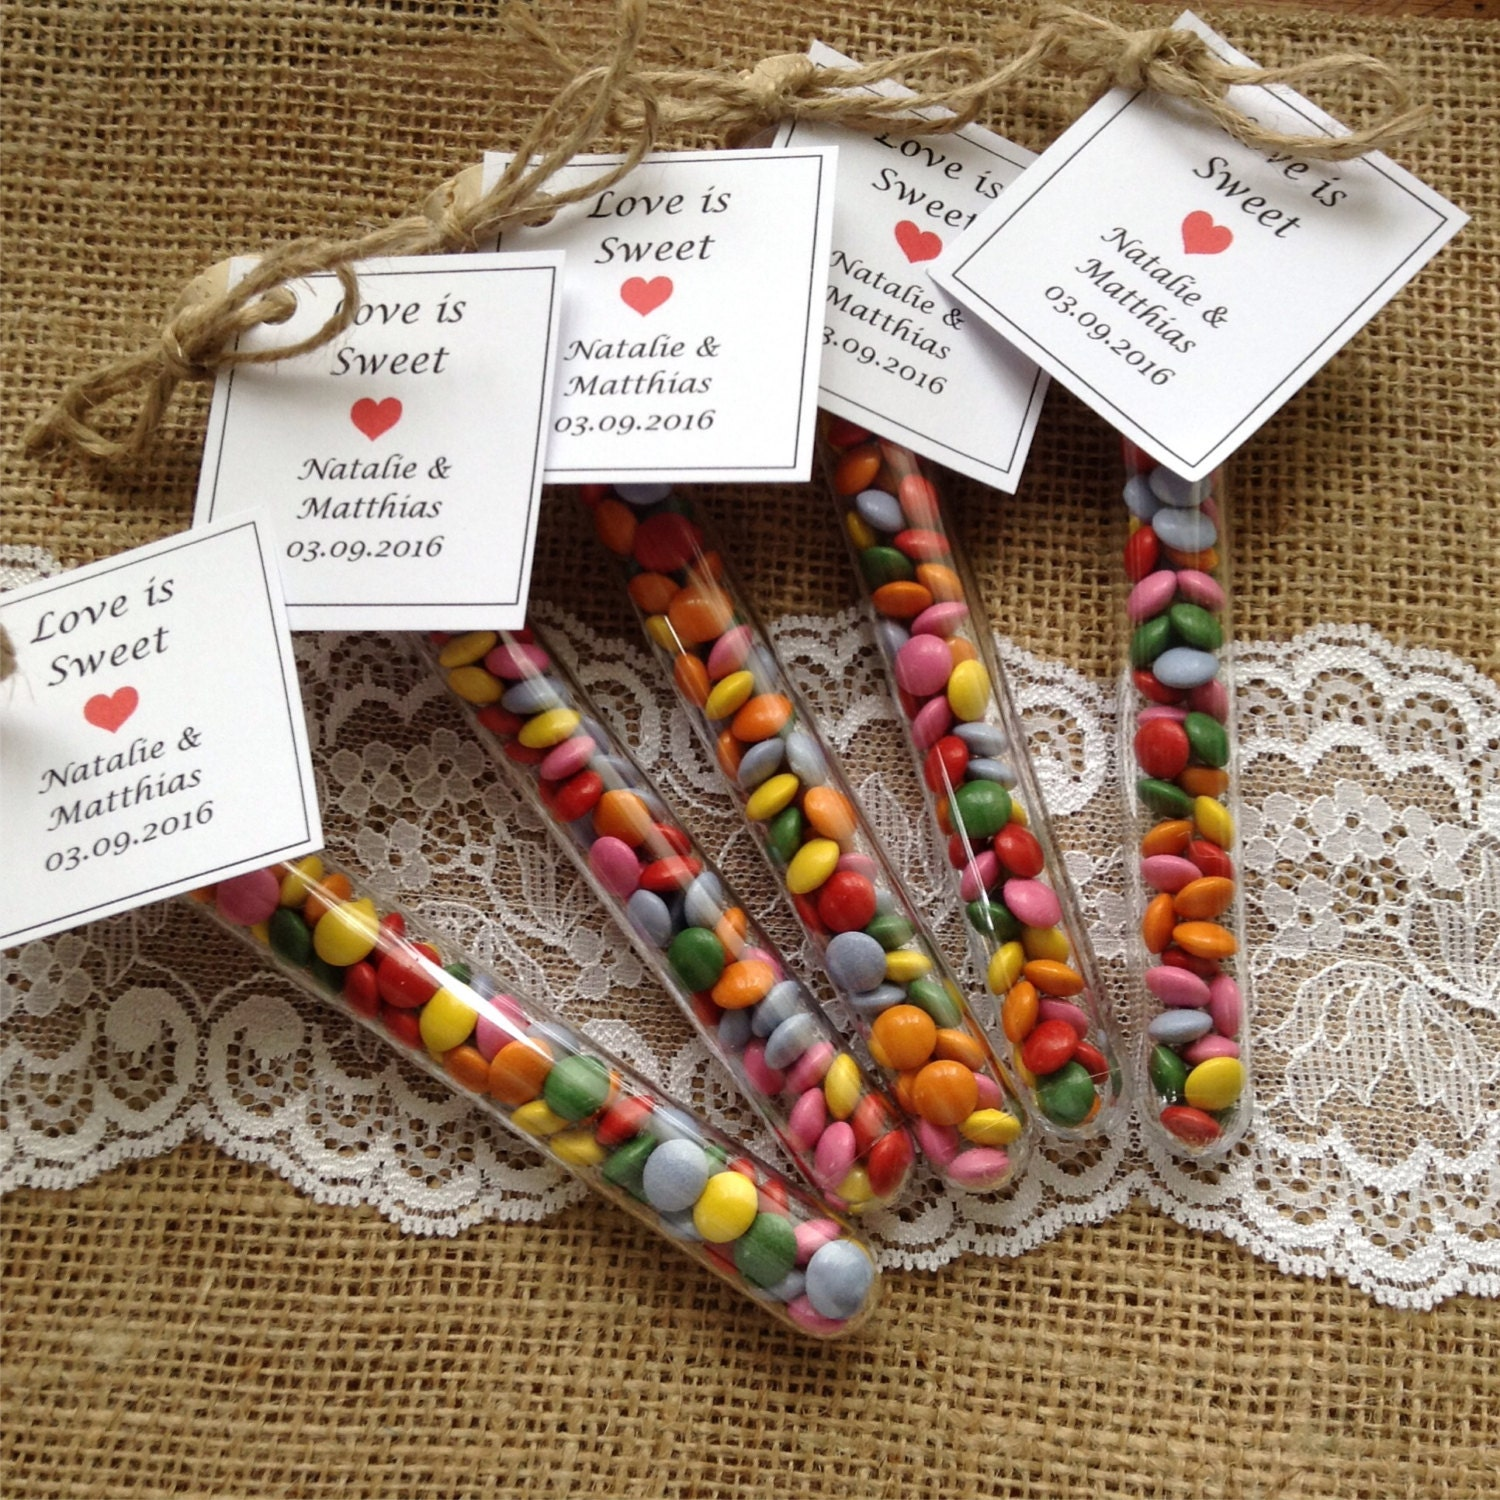 Childrens Wedding Gifts: Test Tube Favours Love Is Sweet Wedding Favors Party